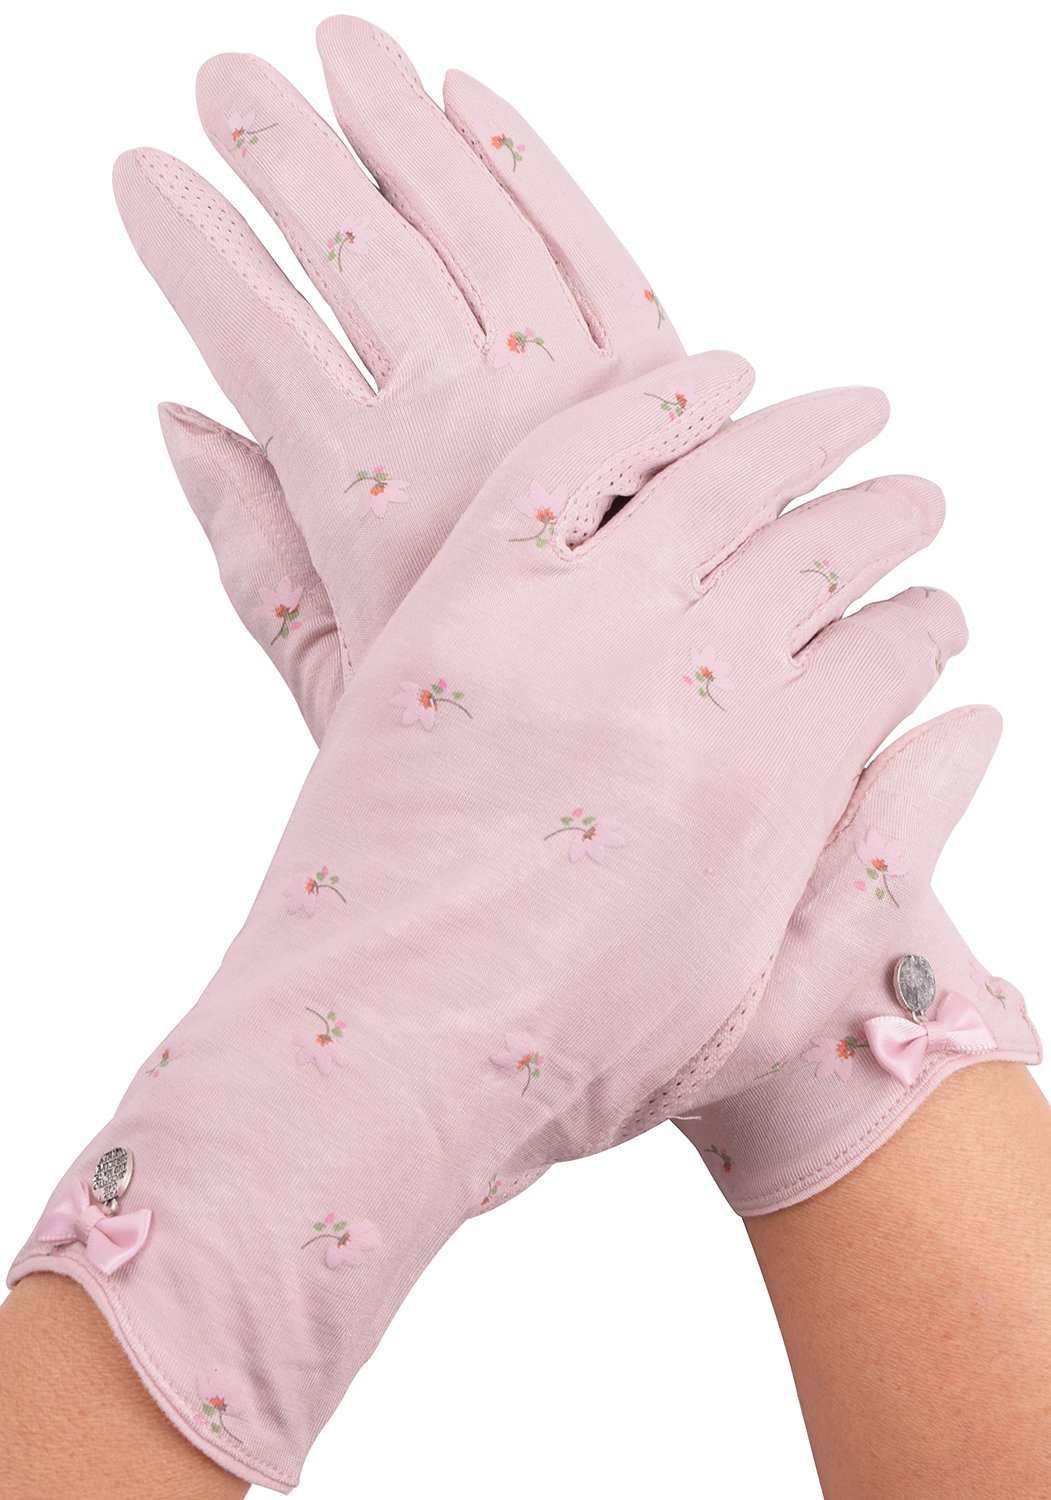 Anti Skid Touchscreen Driving Gloves Women UV Protection Light Pink Cotton Gloves